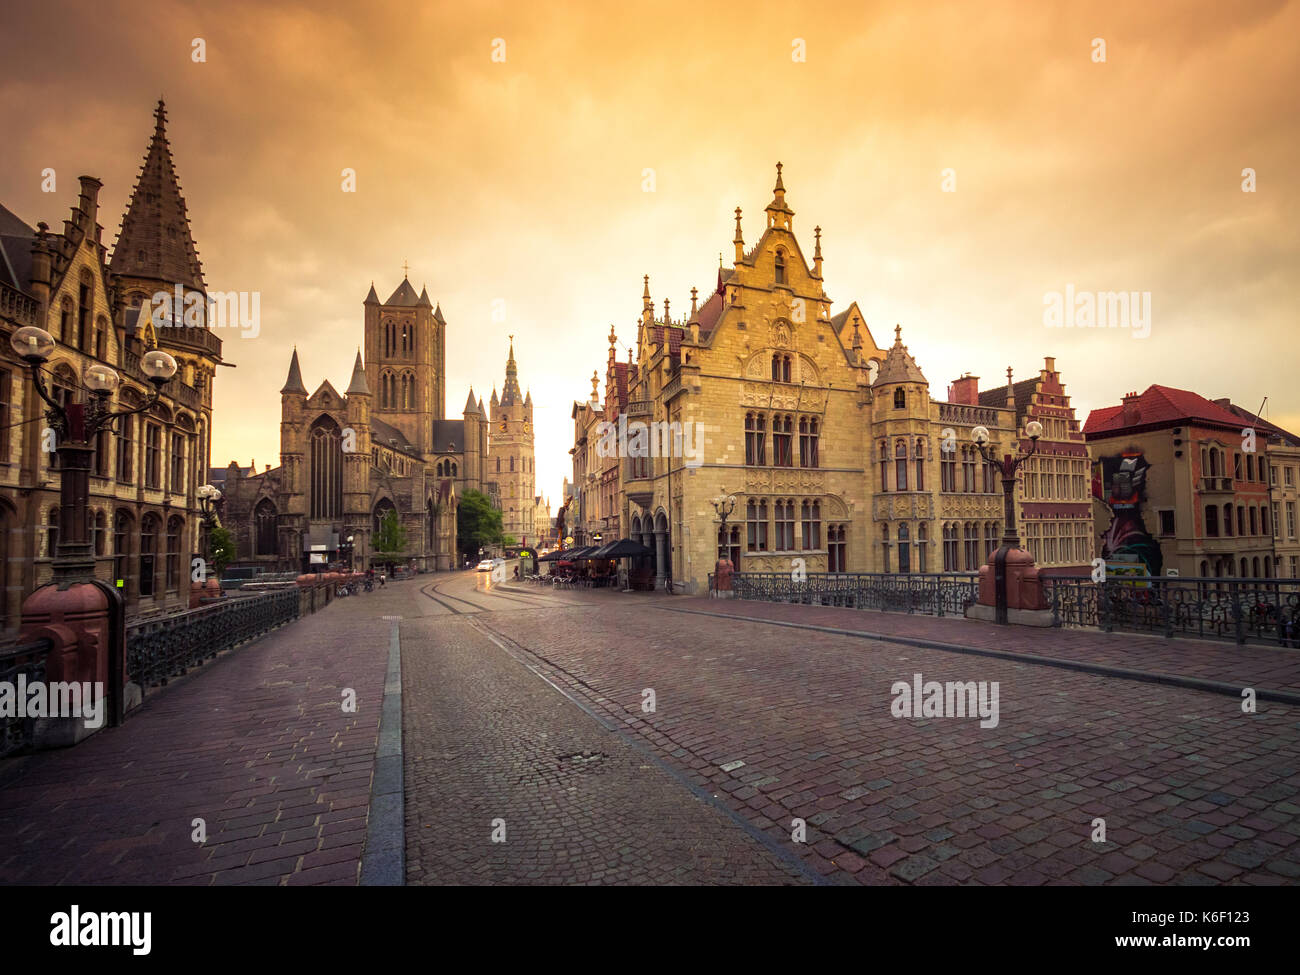 Ghent's old city center scenic place - Ghent, Belgium - Stock Image